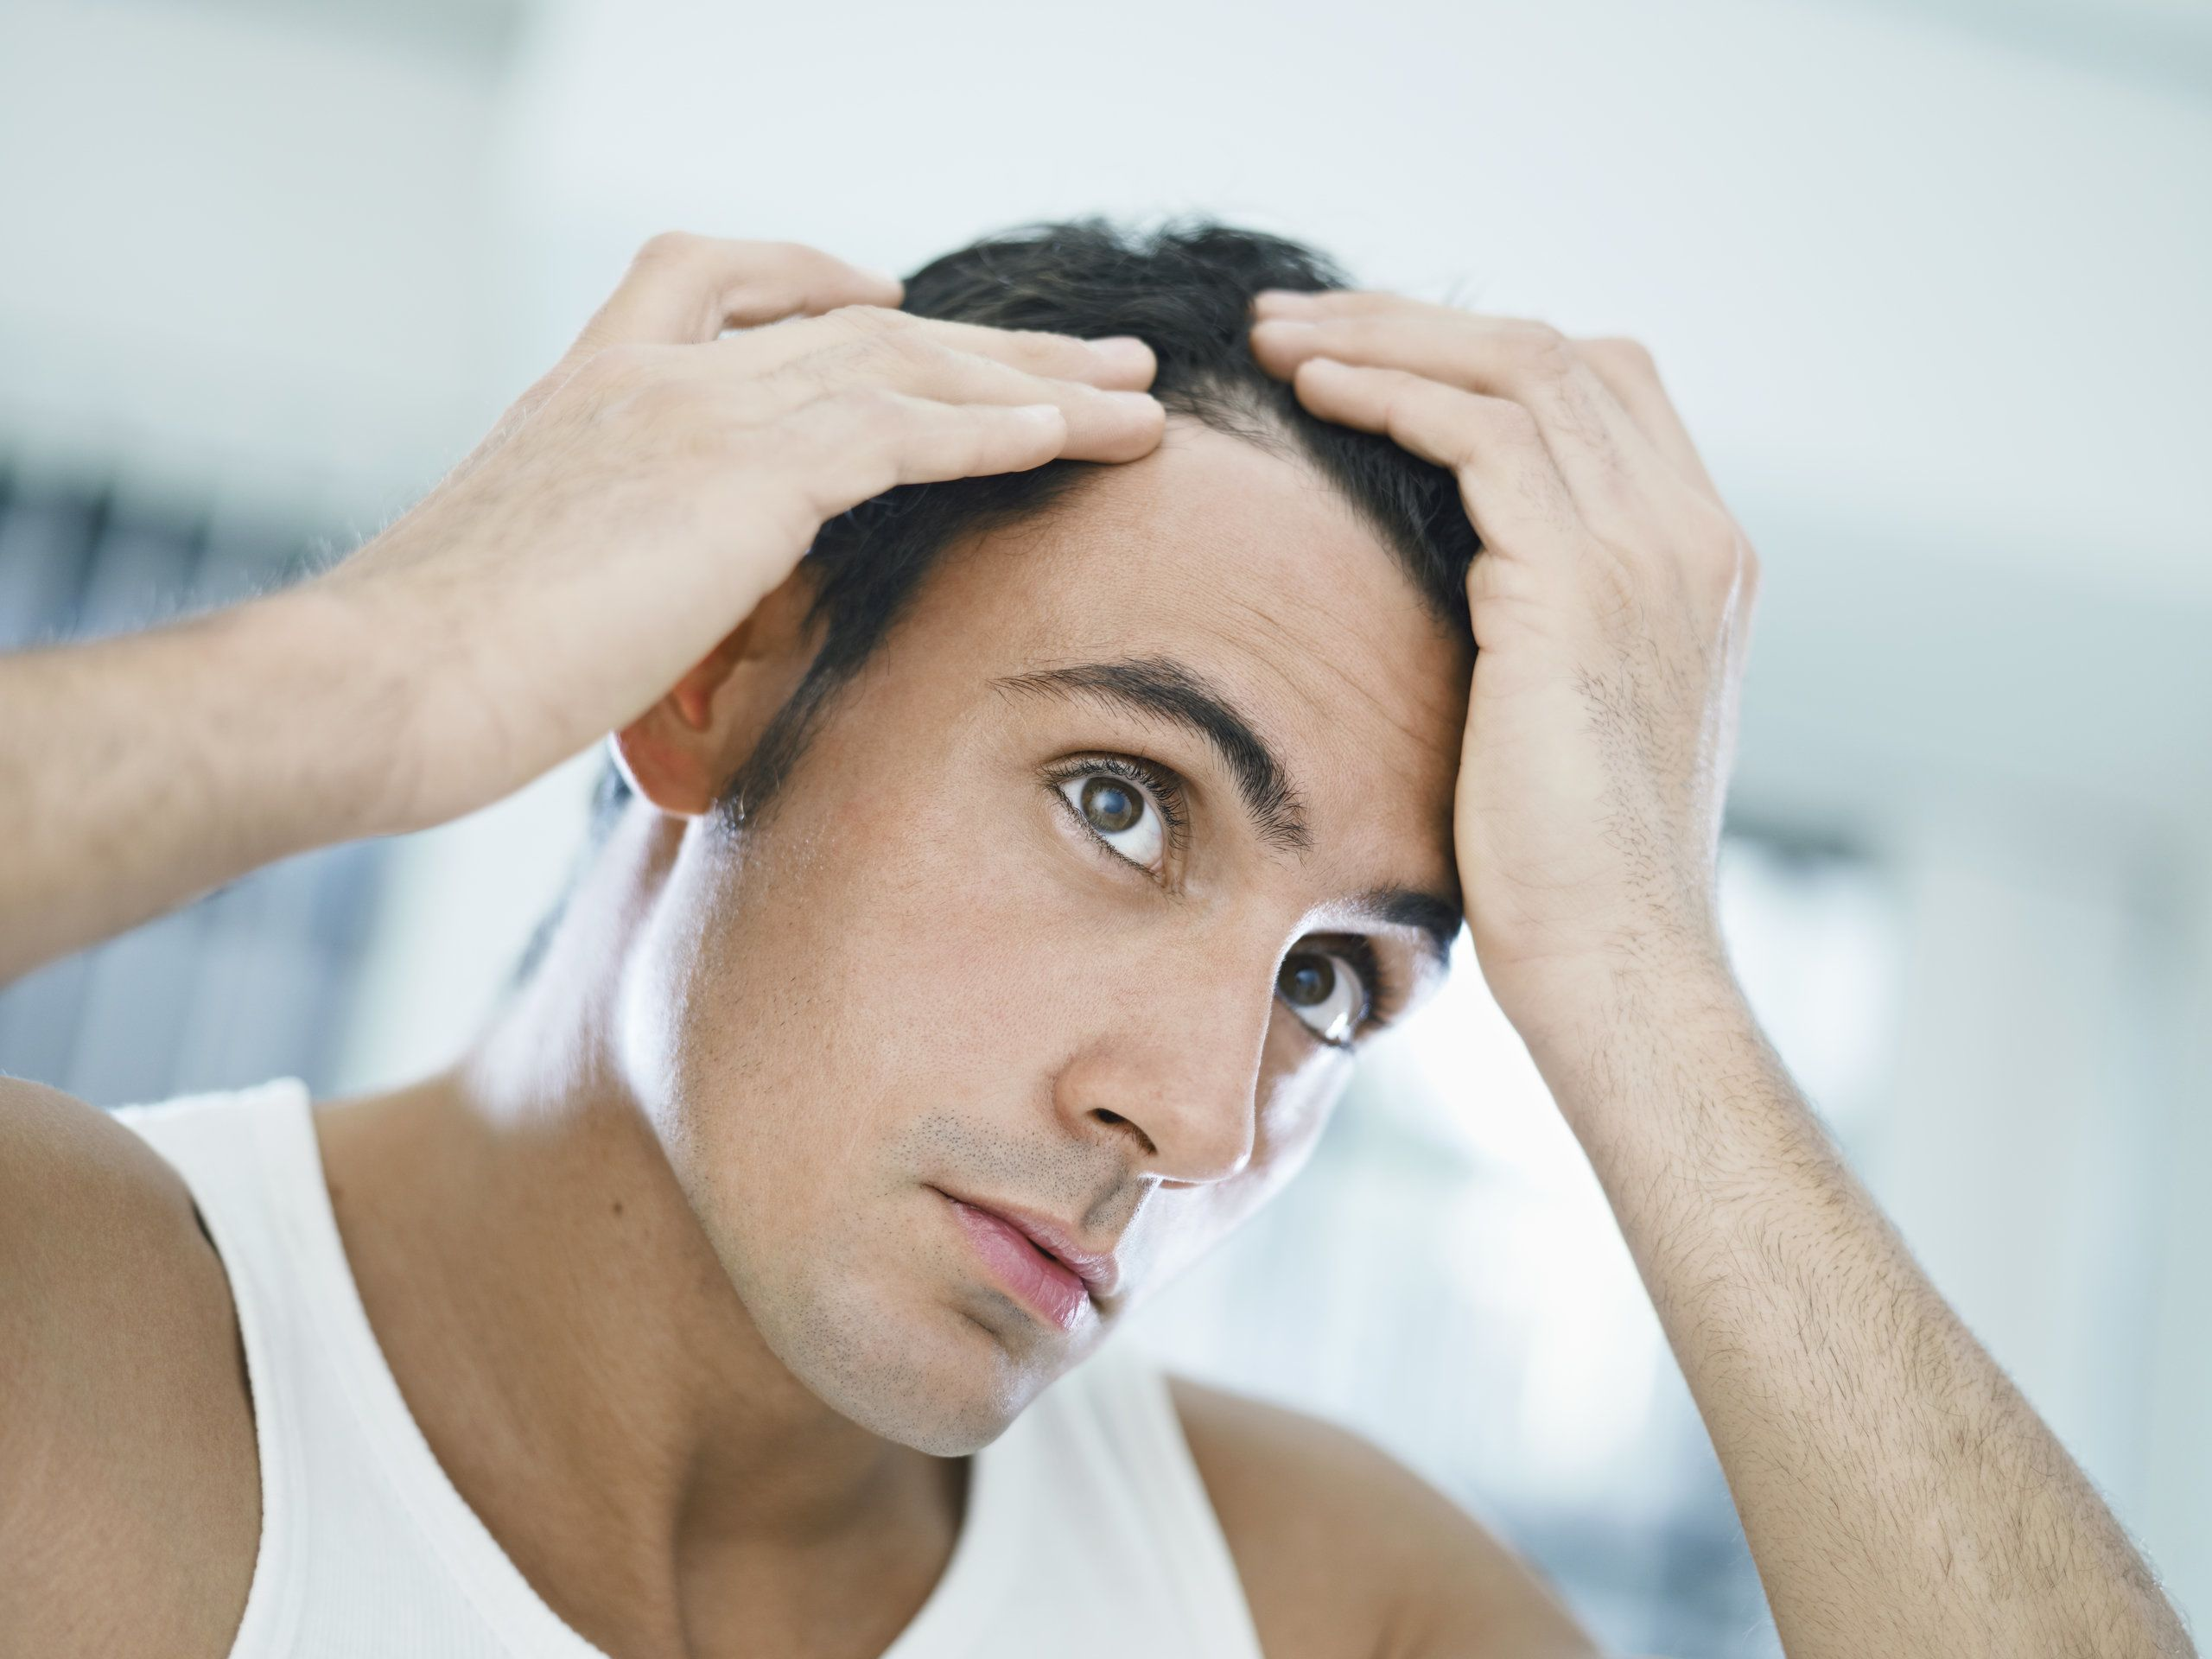 A man examining his hairline